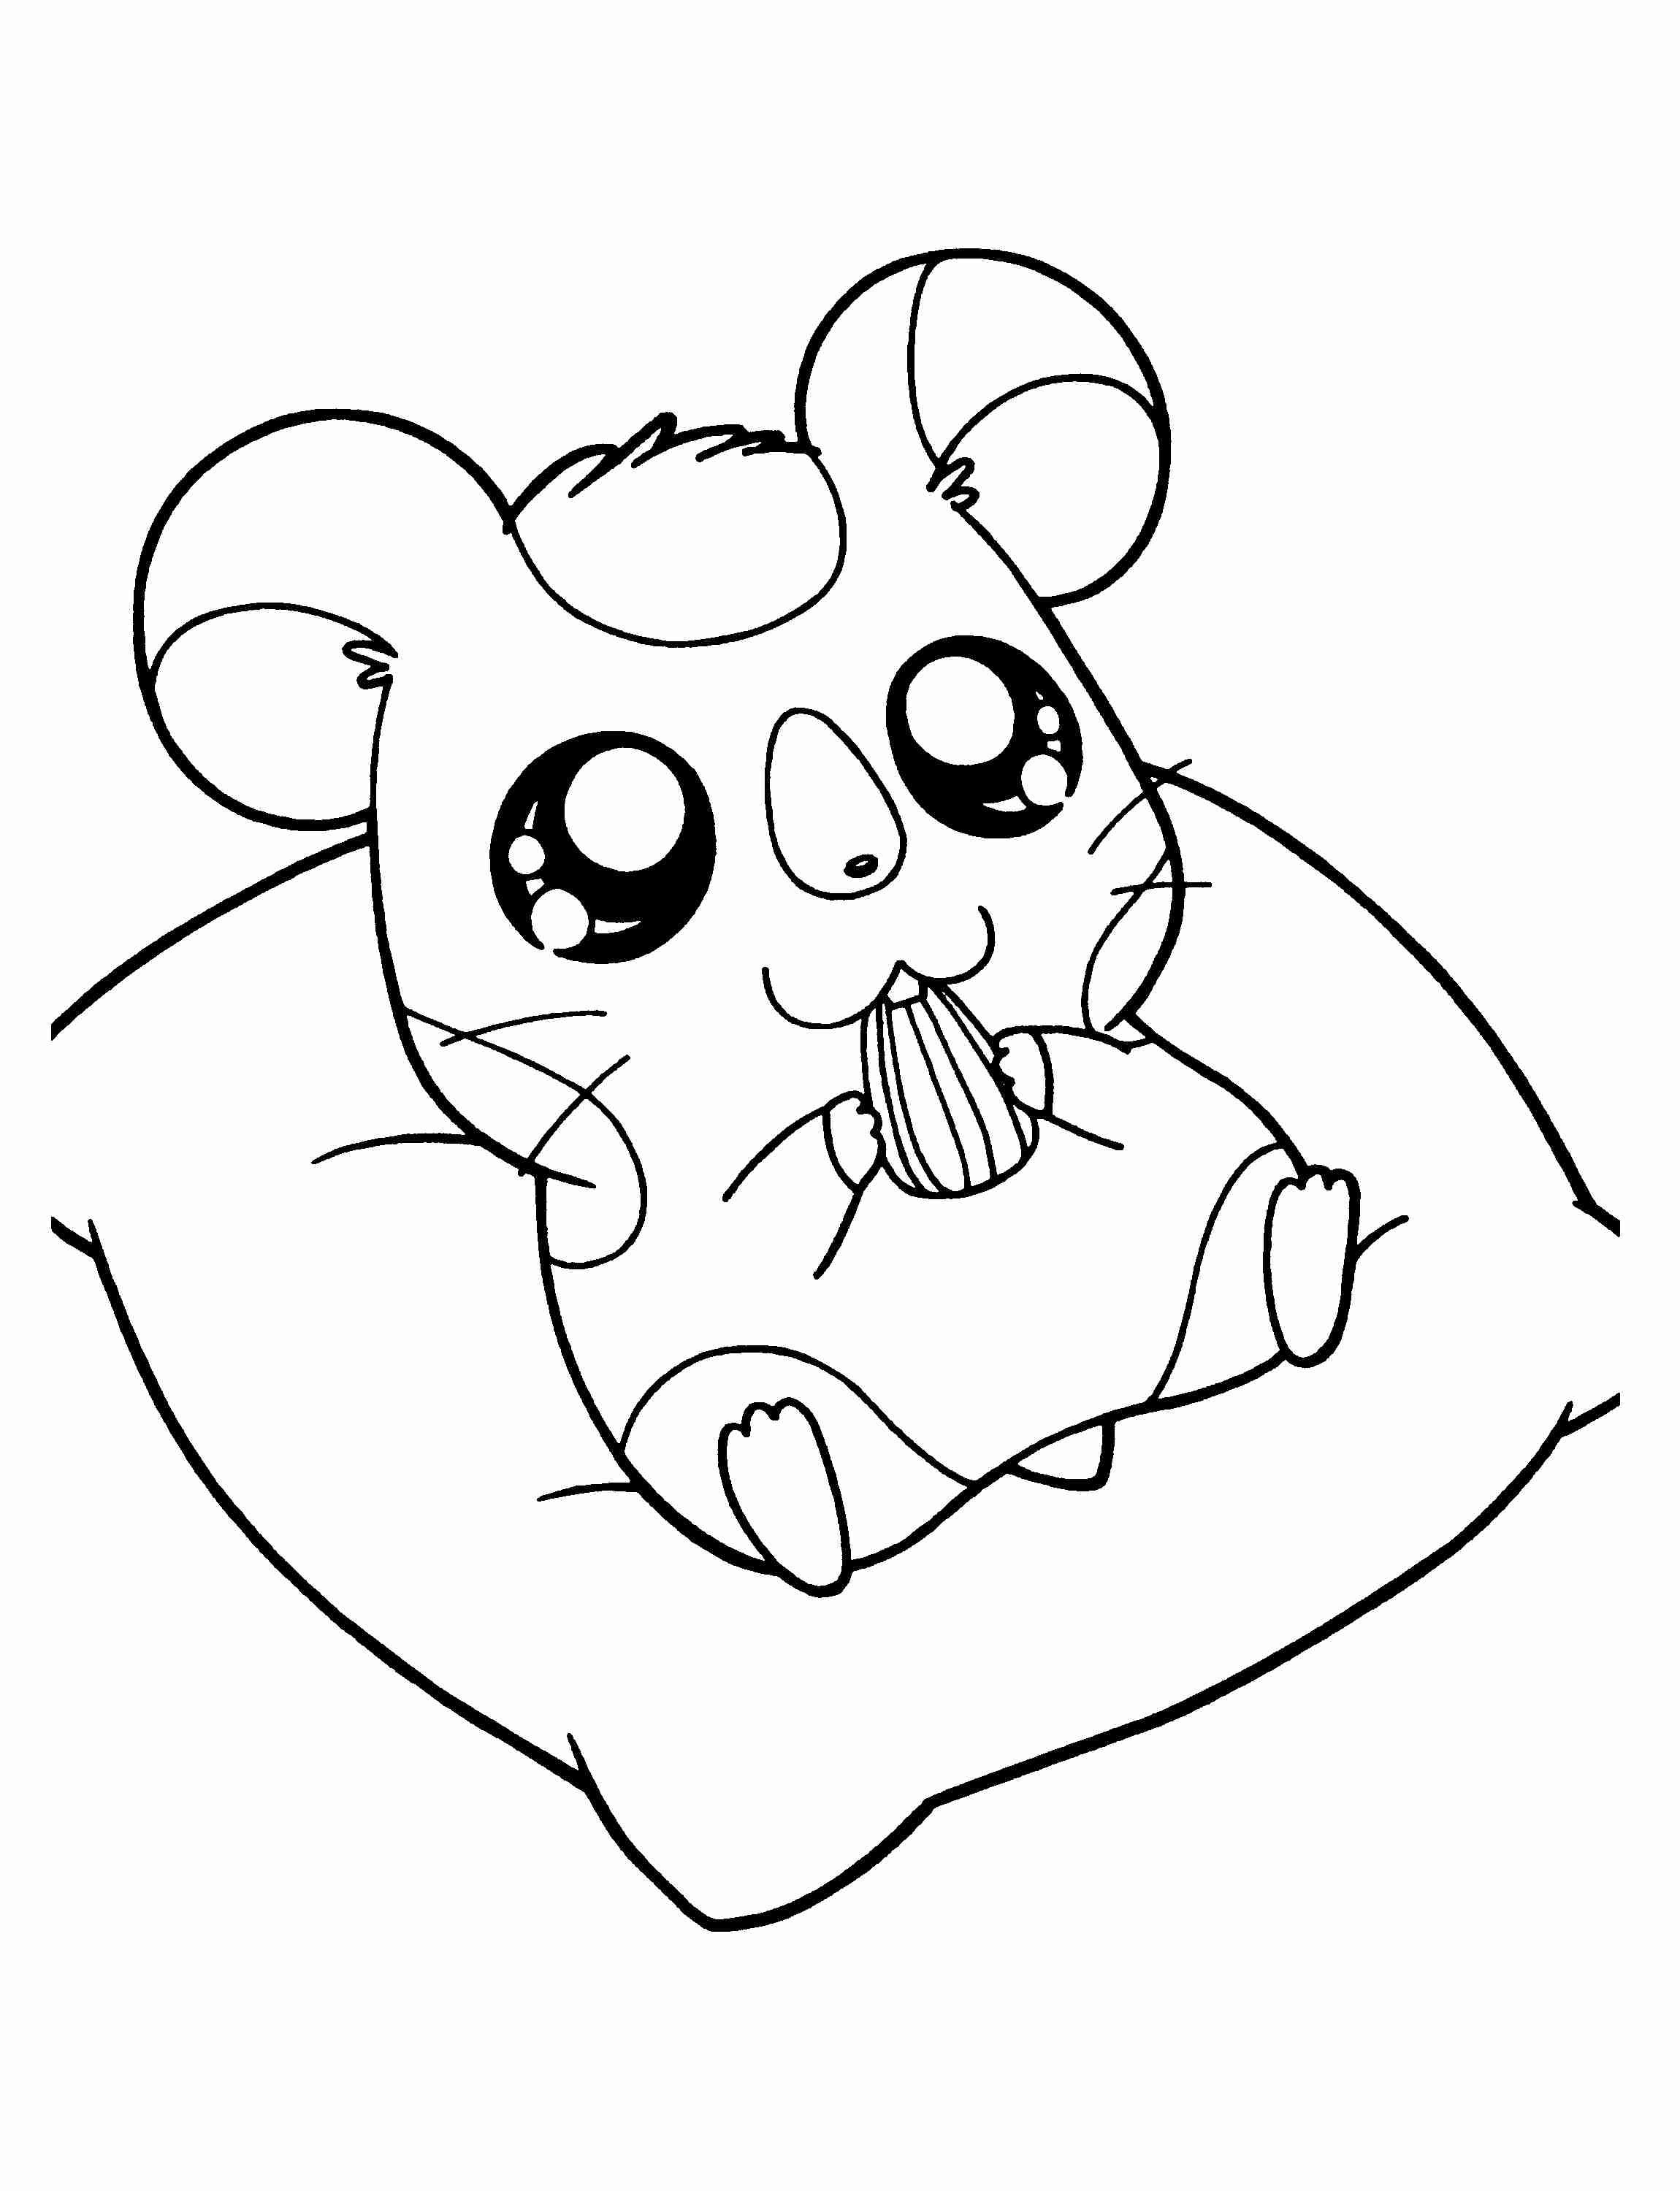 Hamster Coloring Pages Best Coloring Pages For Kids